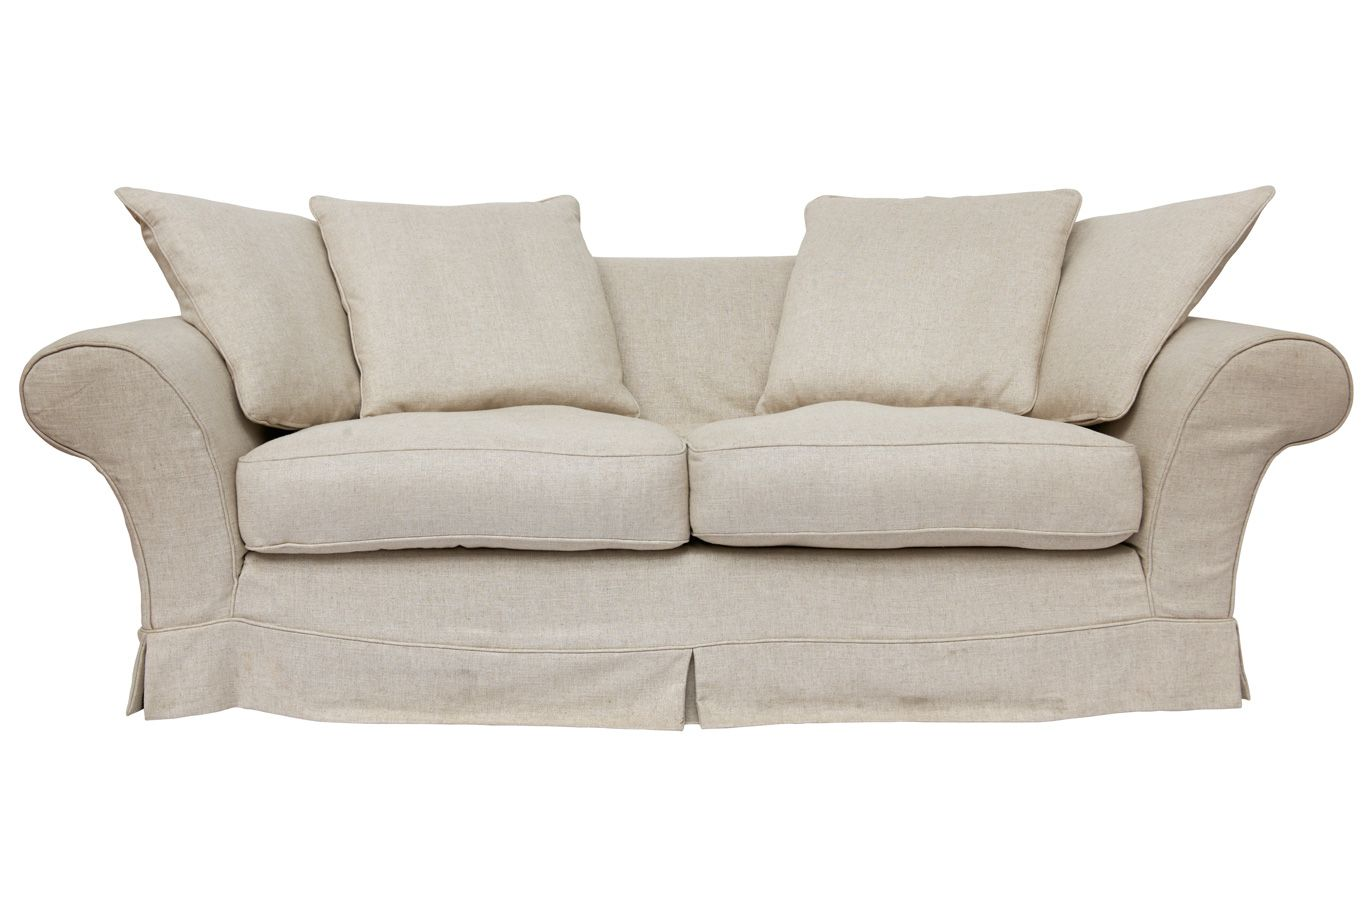 Alston In Alston Linen 2 Seater Sofa Laura Ashley Made To Order King Size Bed Linen Bed Linens Luxury 2 Seater Sofa